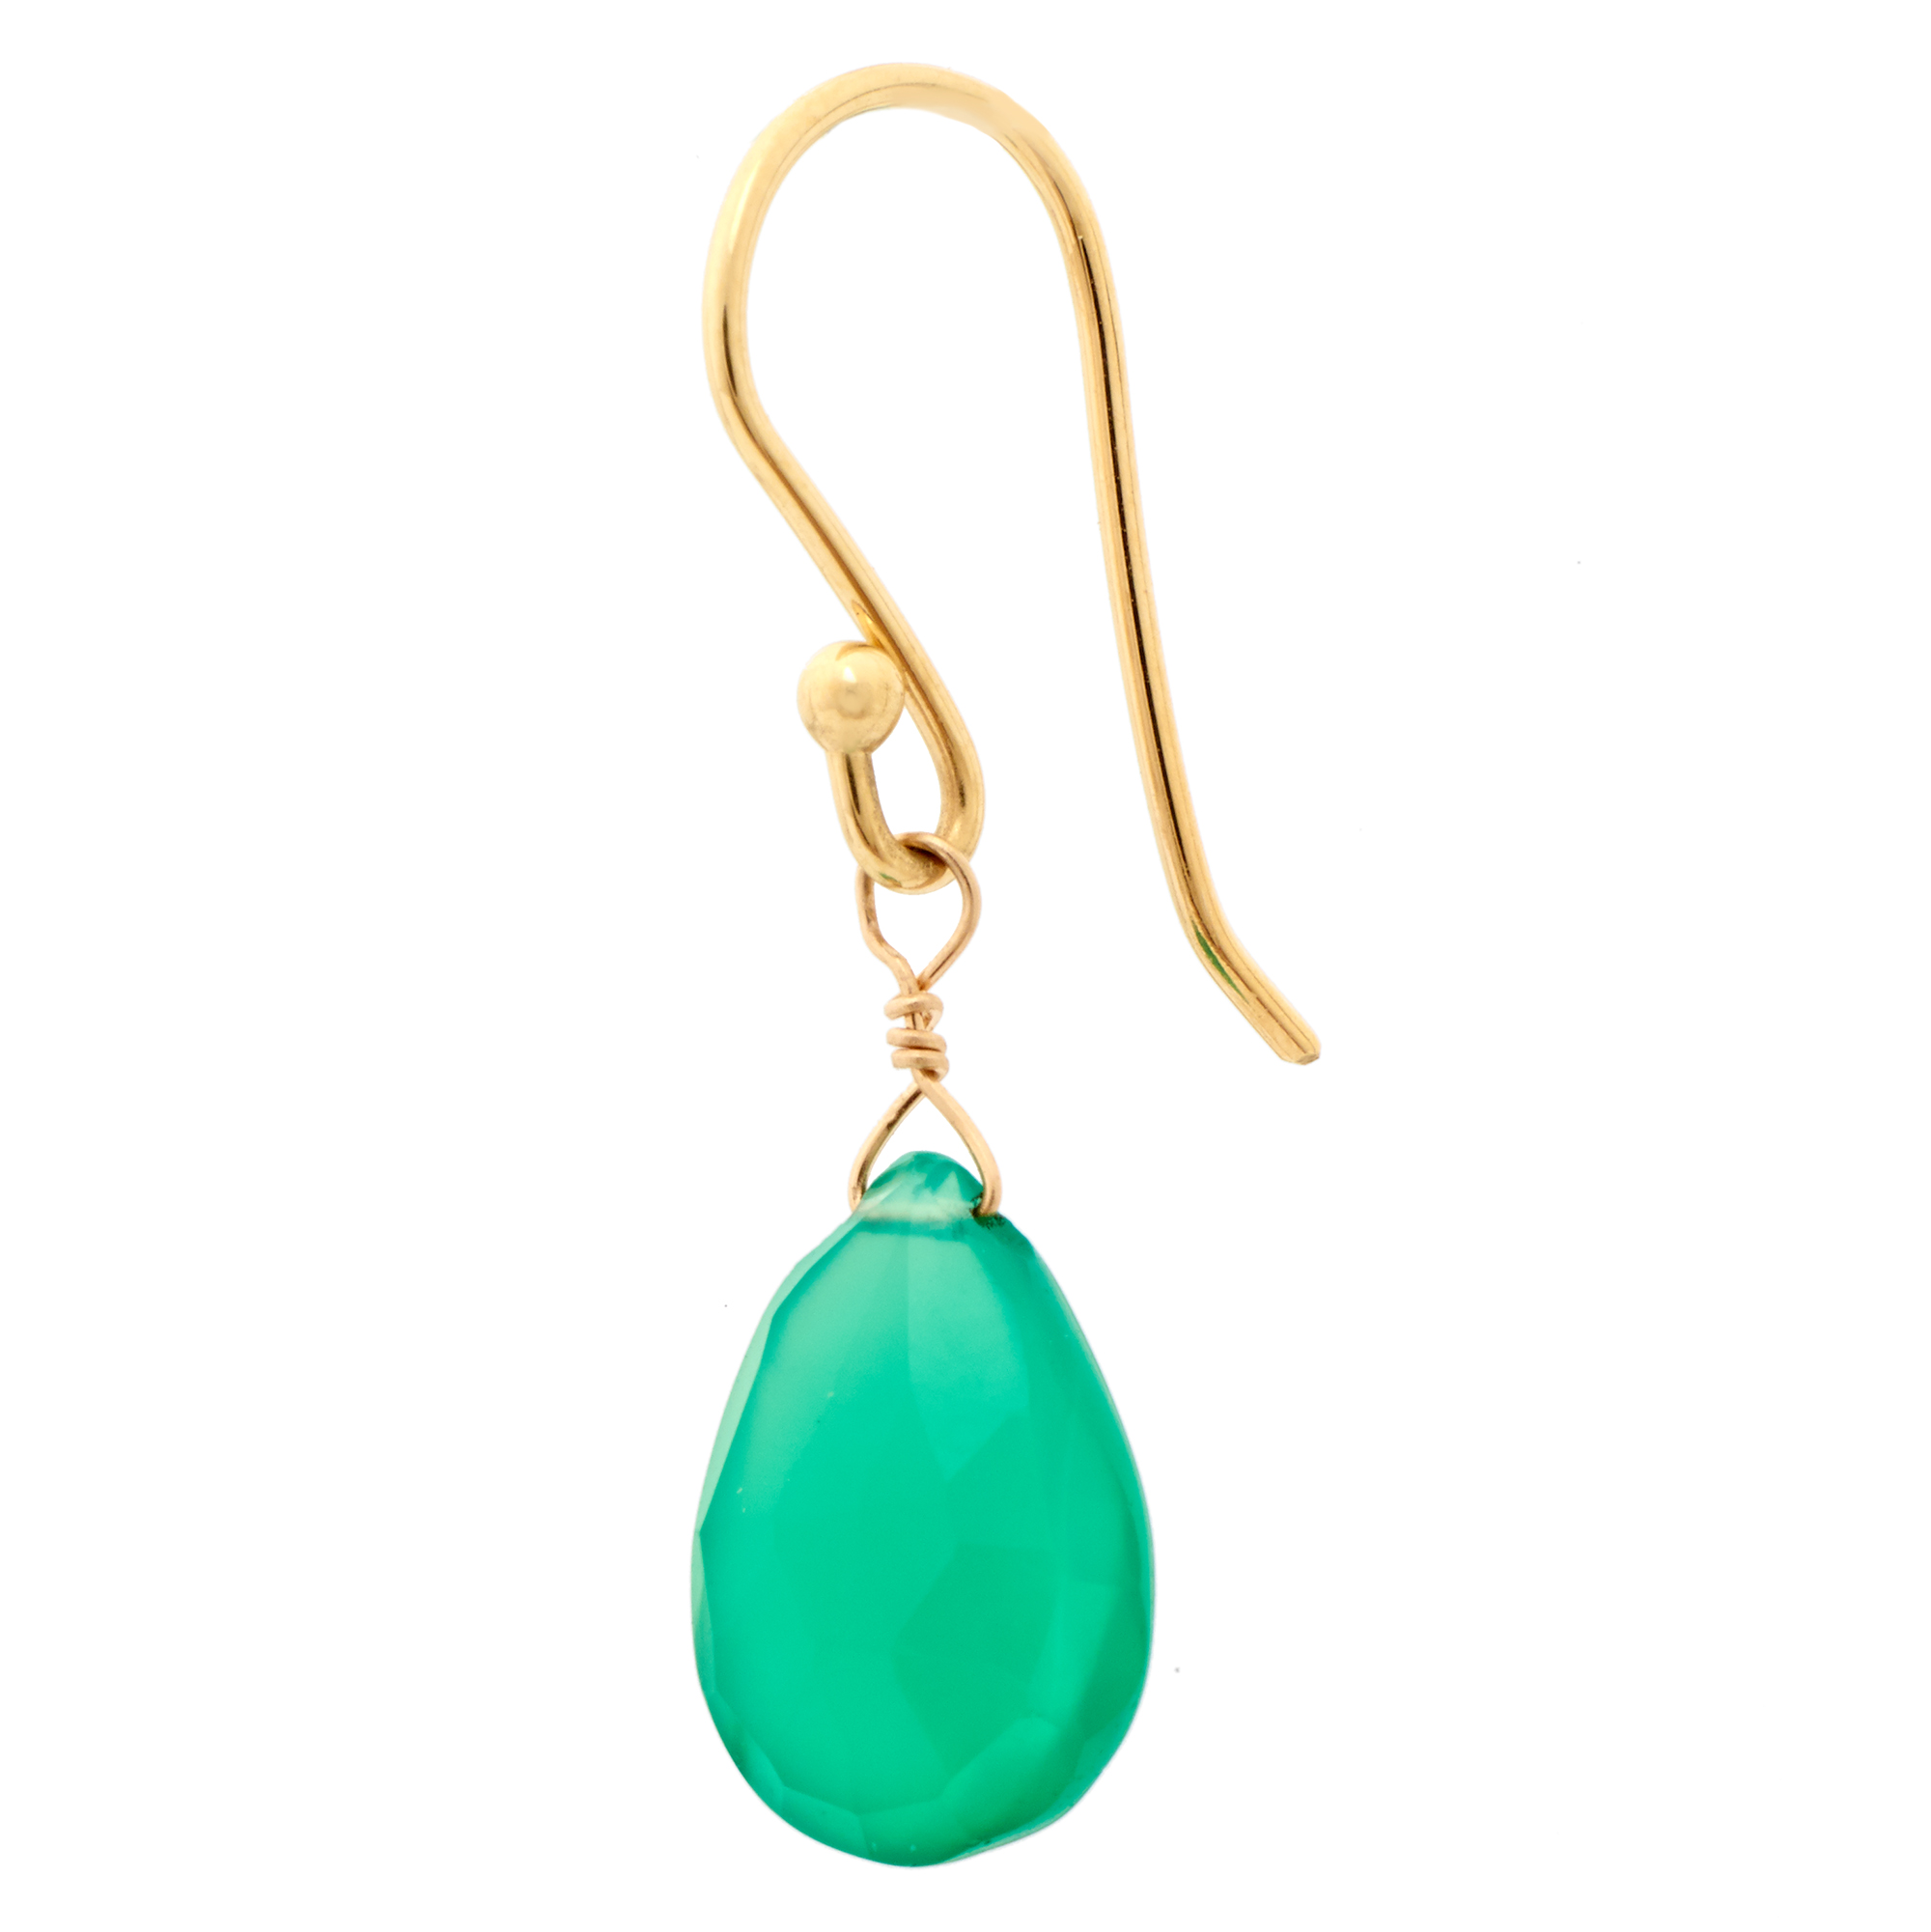 Anne Sportun Green Onyx Teardrop Briolette Earrings.